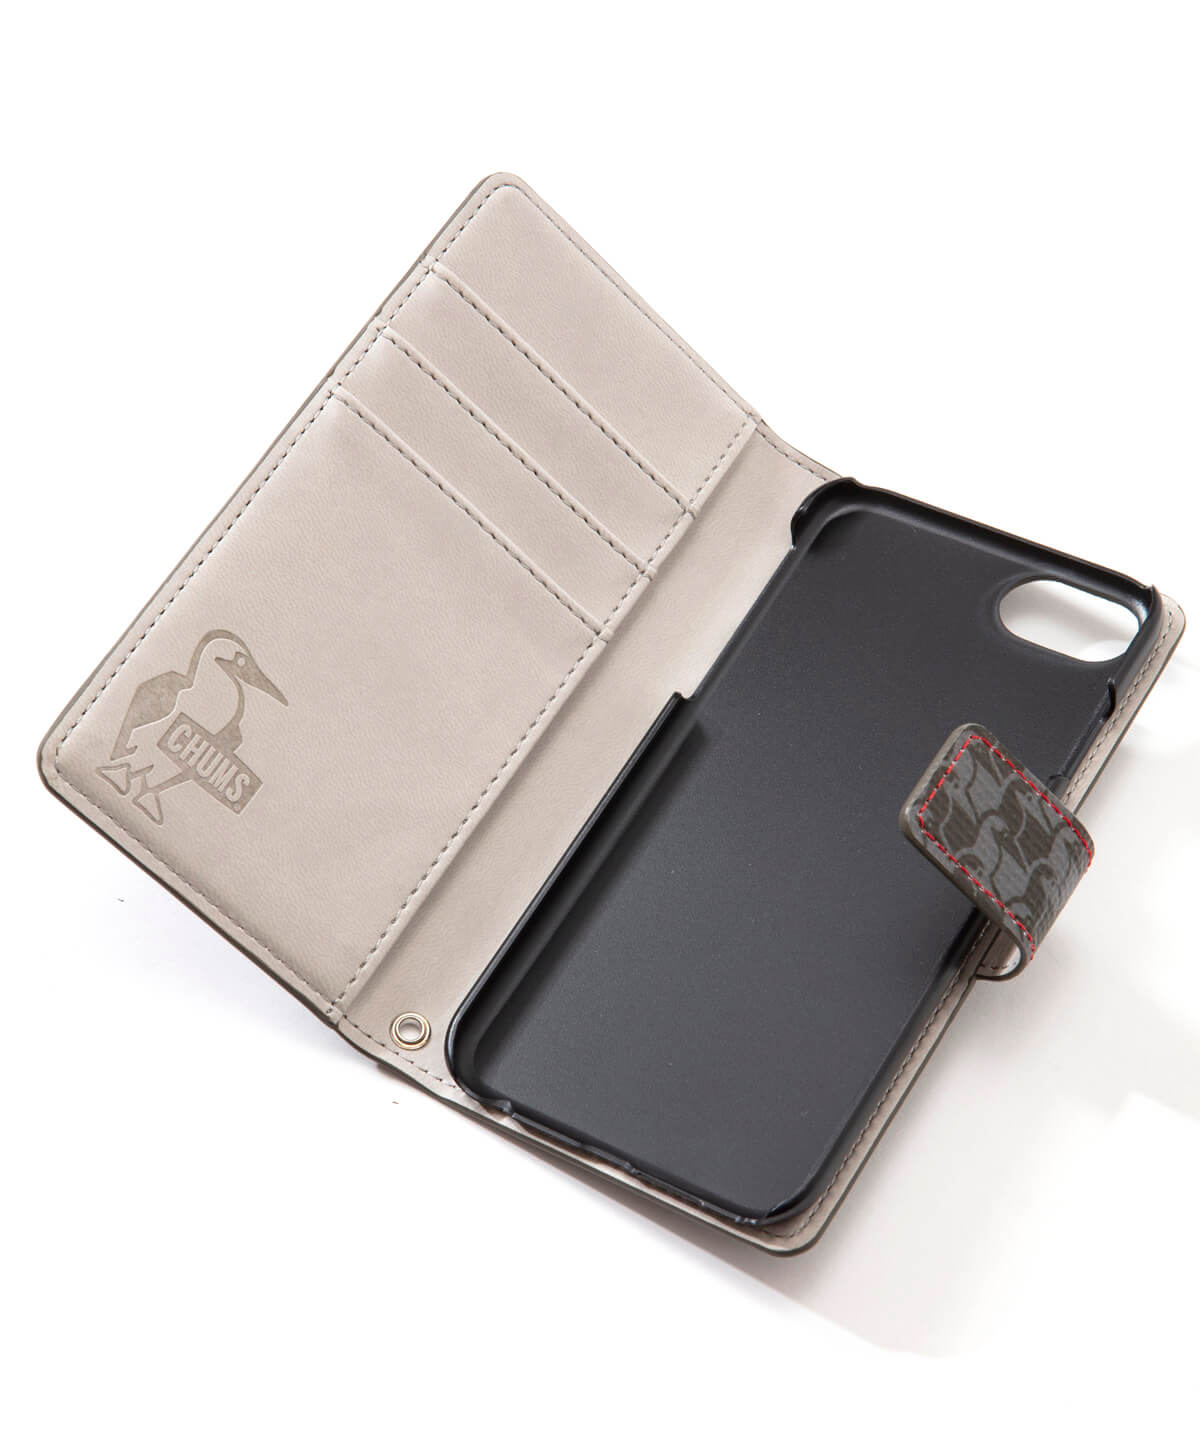 2926721ba8 ... Diary Case For iPhone 6/7/8(ダイアリーケースフォーアイフォン6/ ...